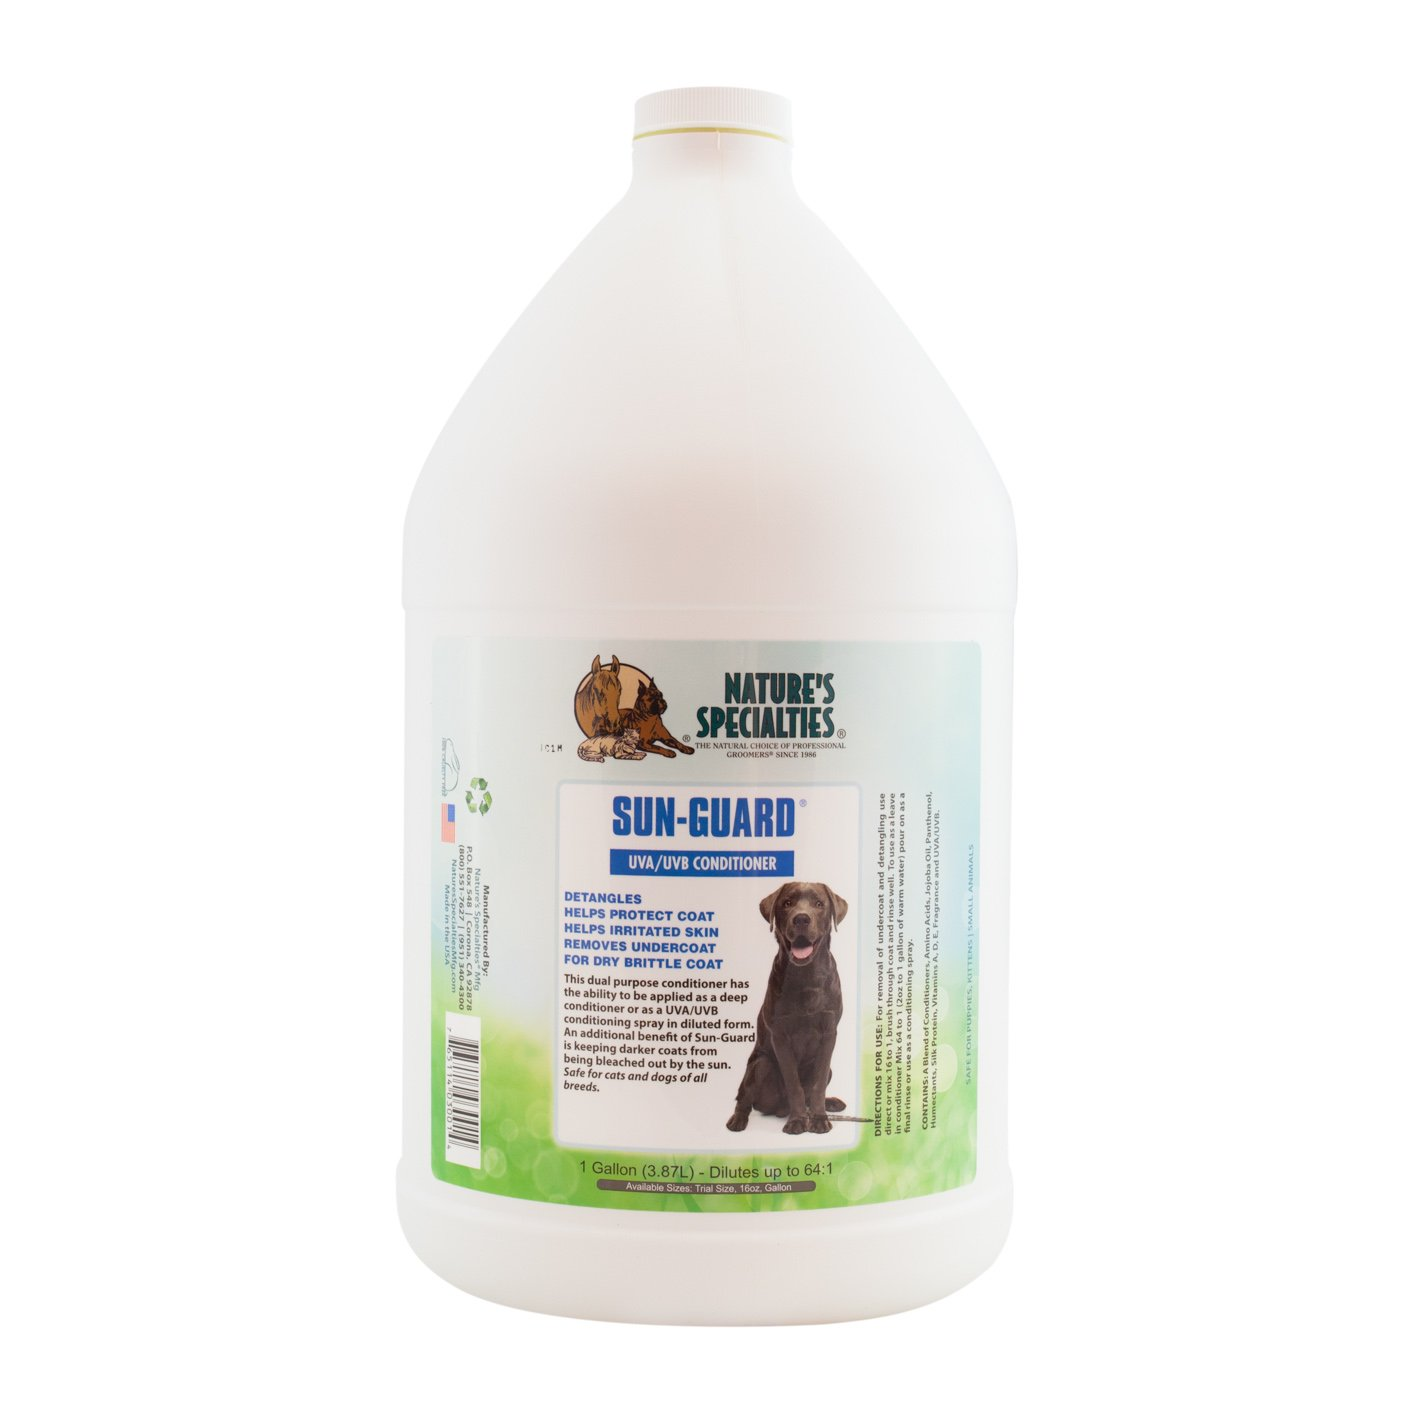 Nature's Specialties Sun Guard Leave in Pet Conditioner with UVA/UVB by Nature's Specialties Mfg